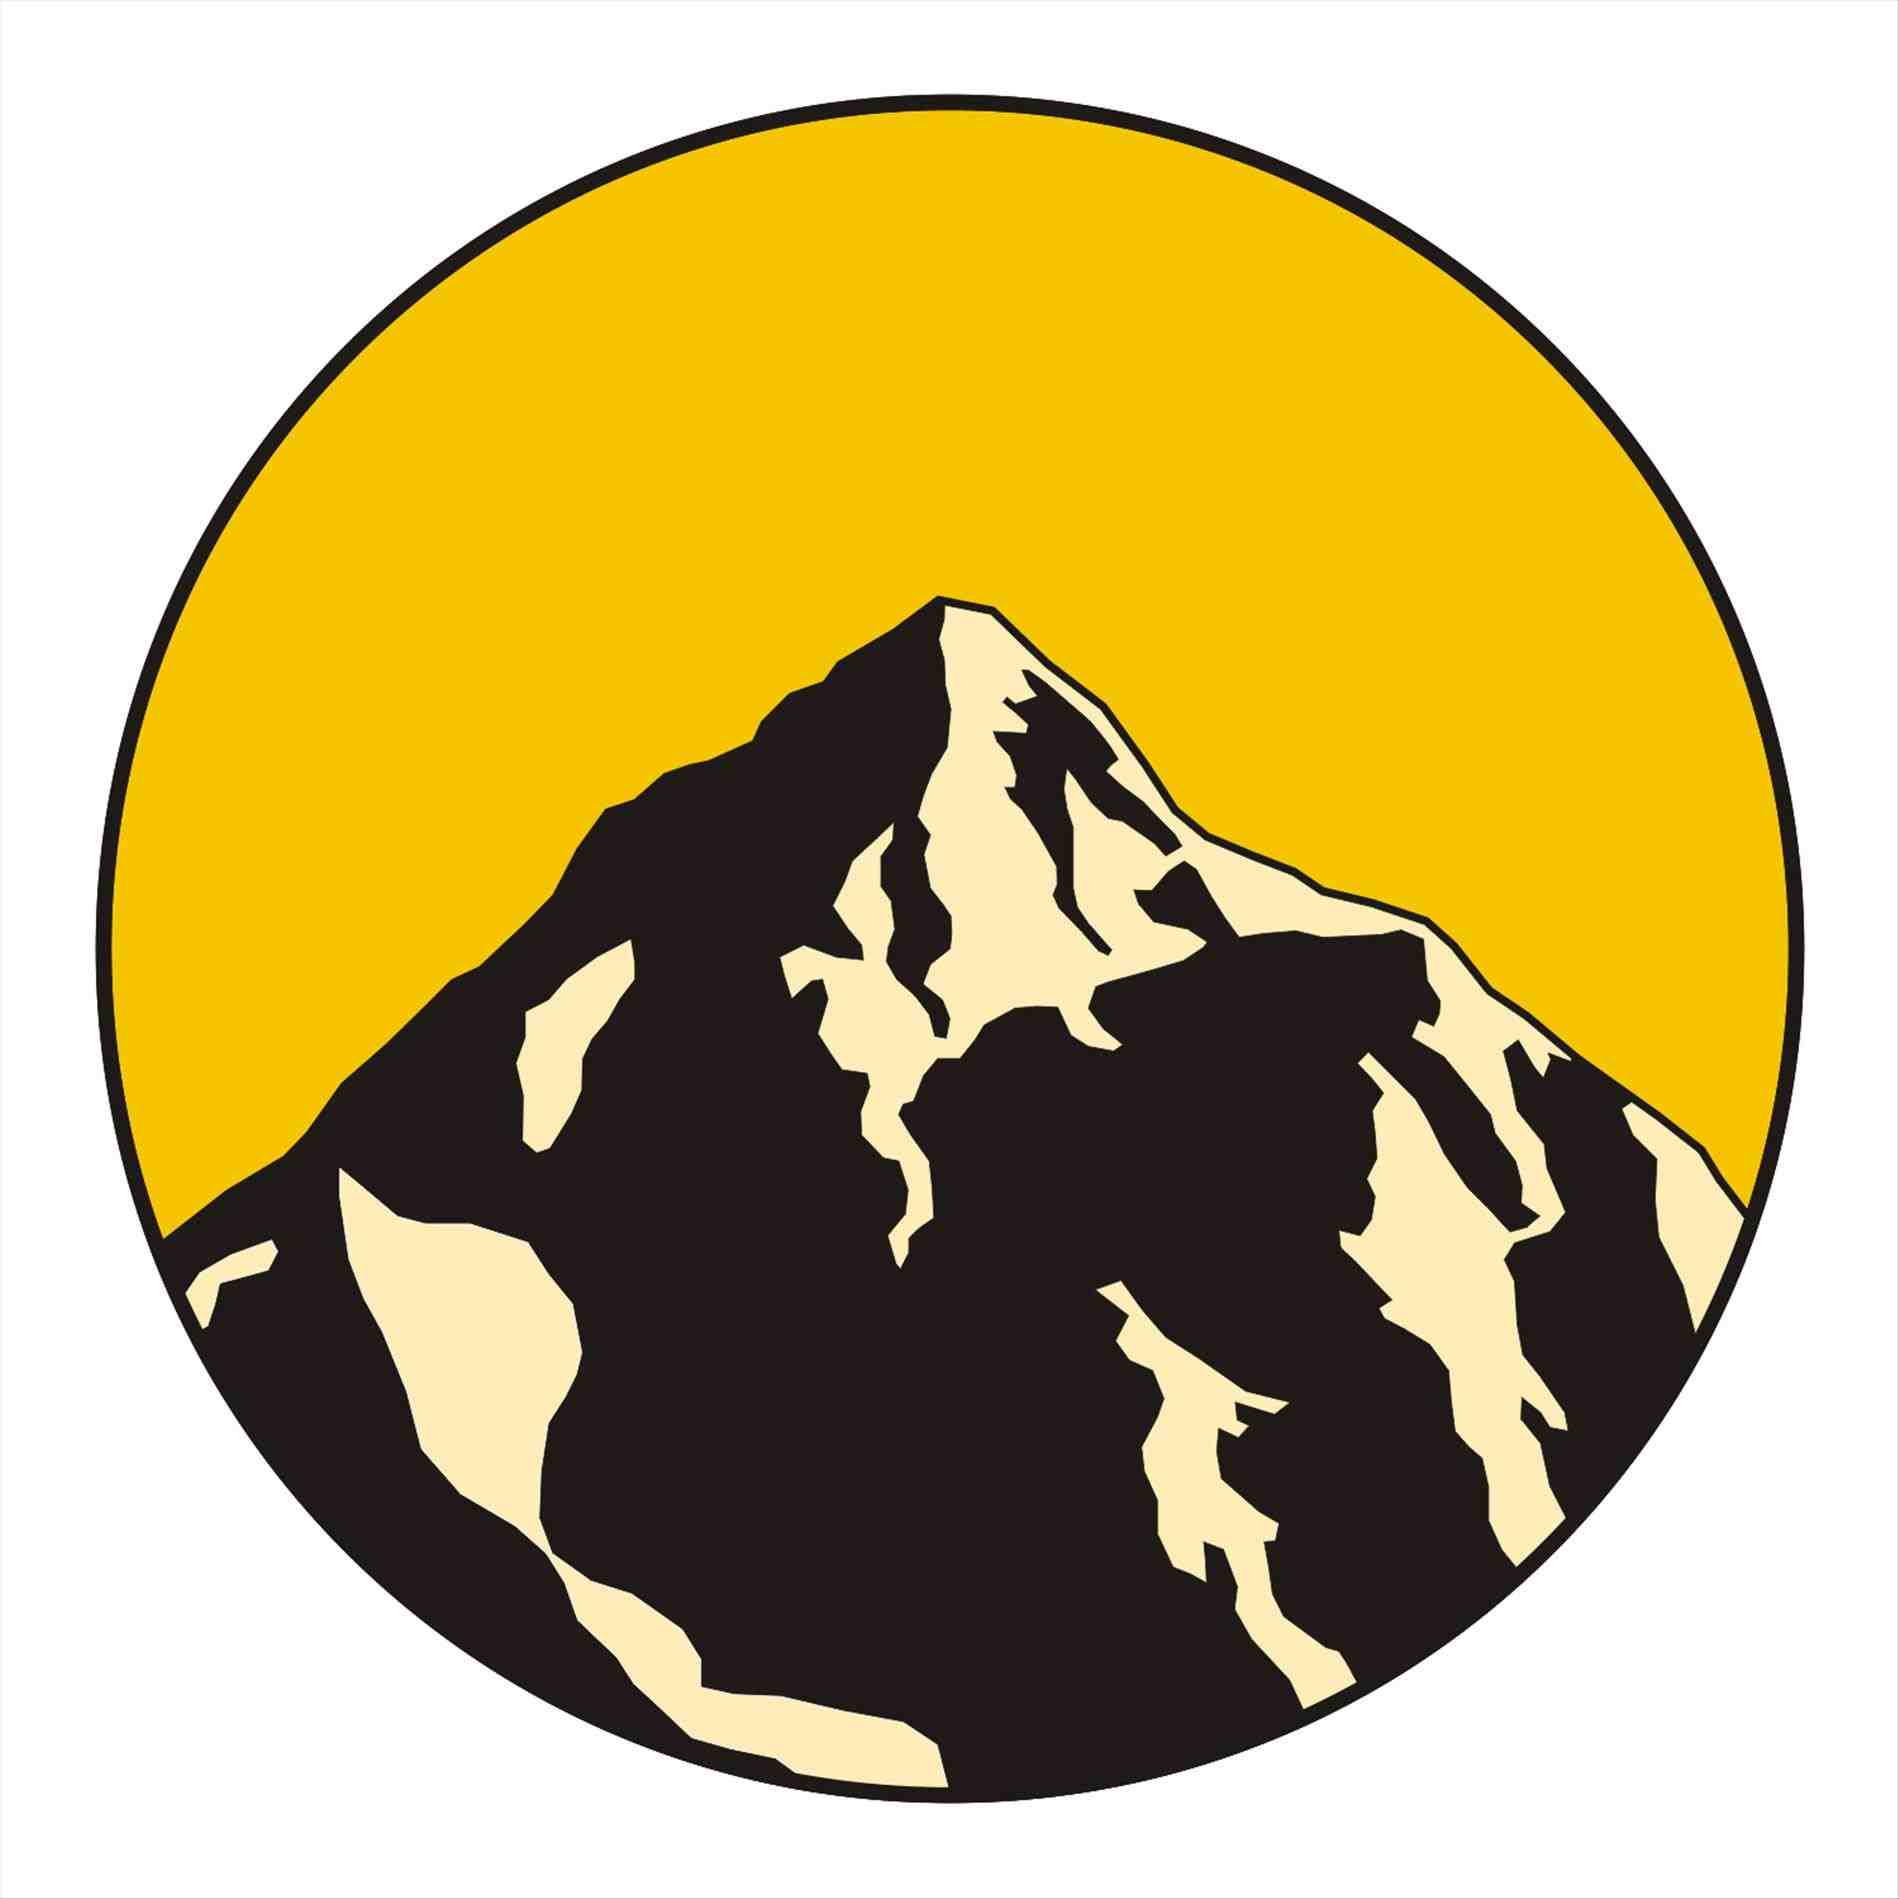 Hiking clipart rock mountain. Mountains by lordoftheloch rpg